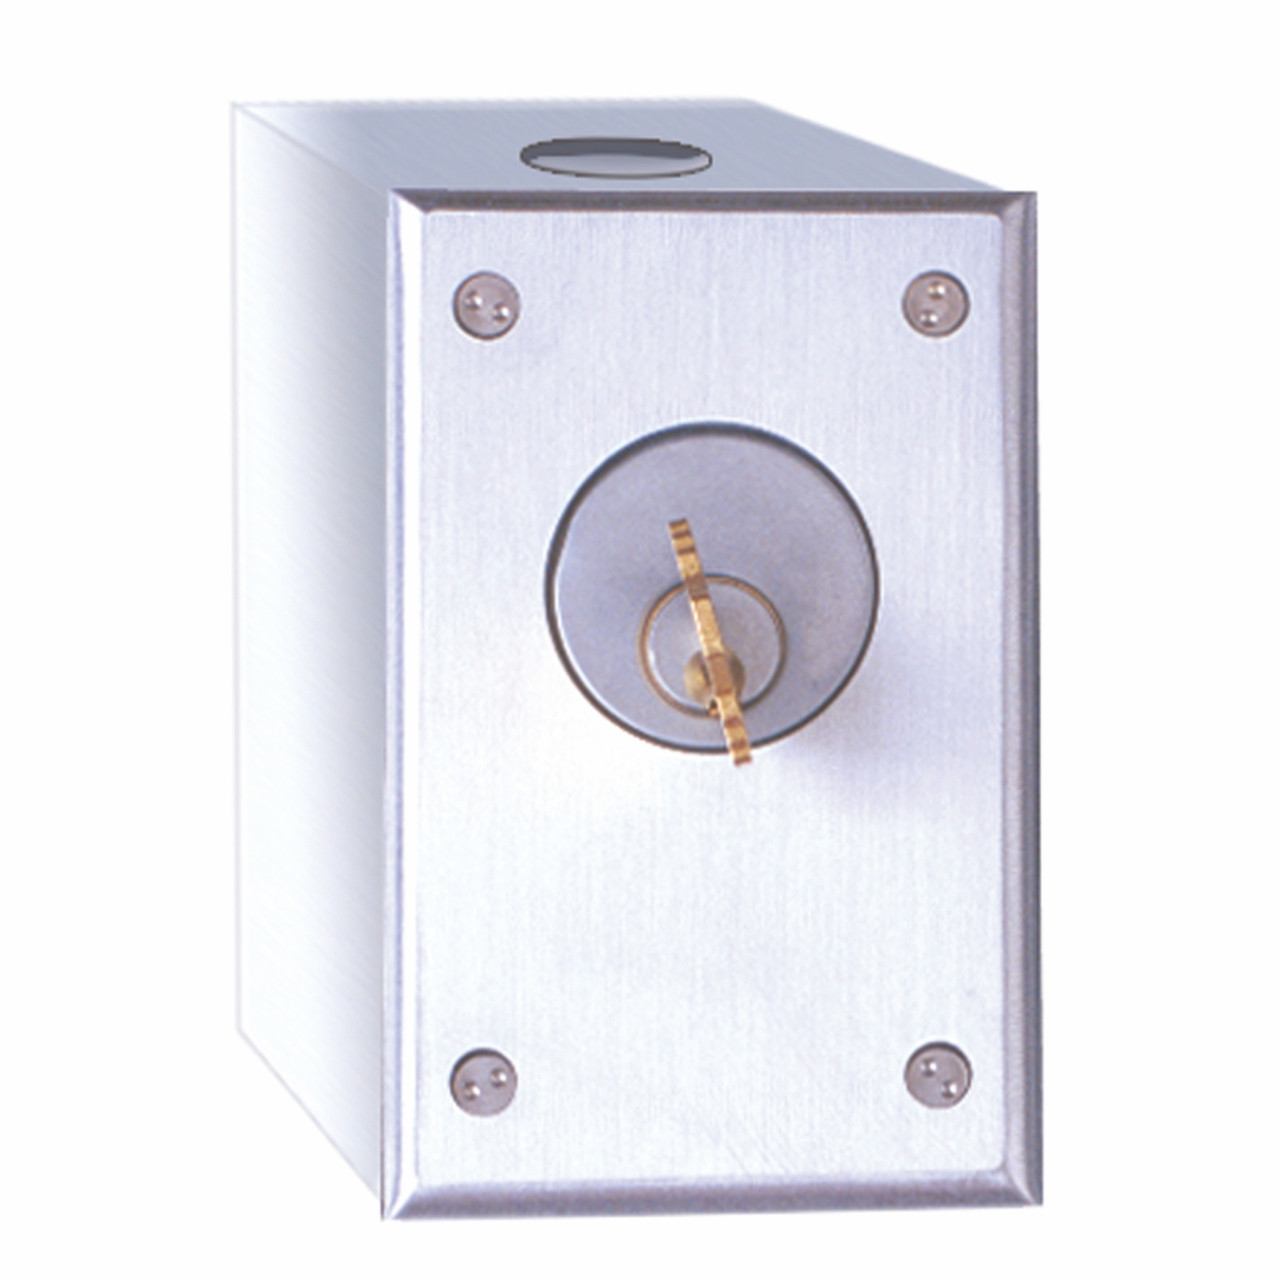 Camden Cm 1000 Series Surface Mount Key Switch Box